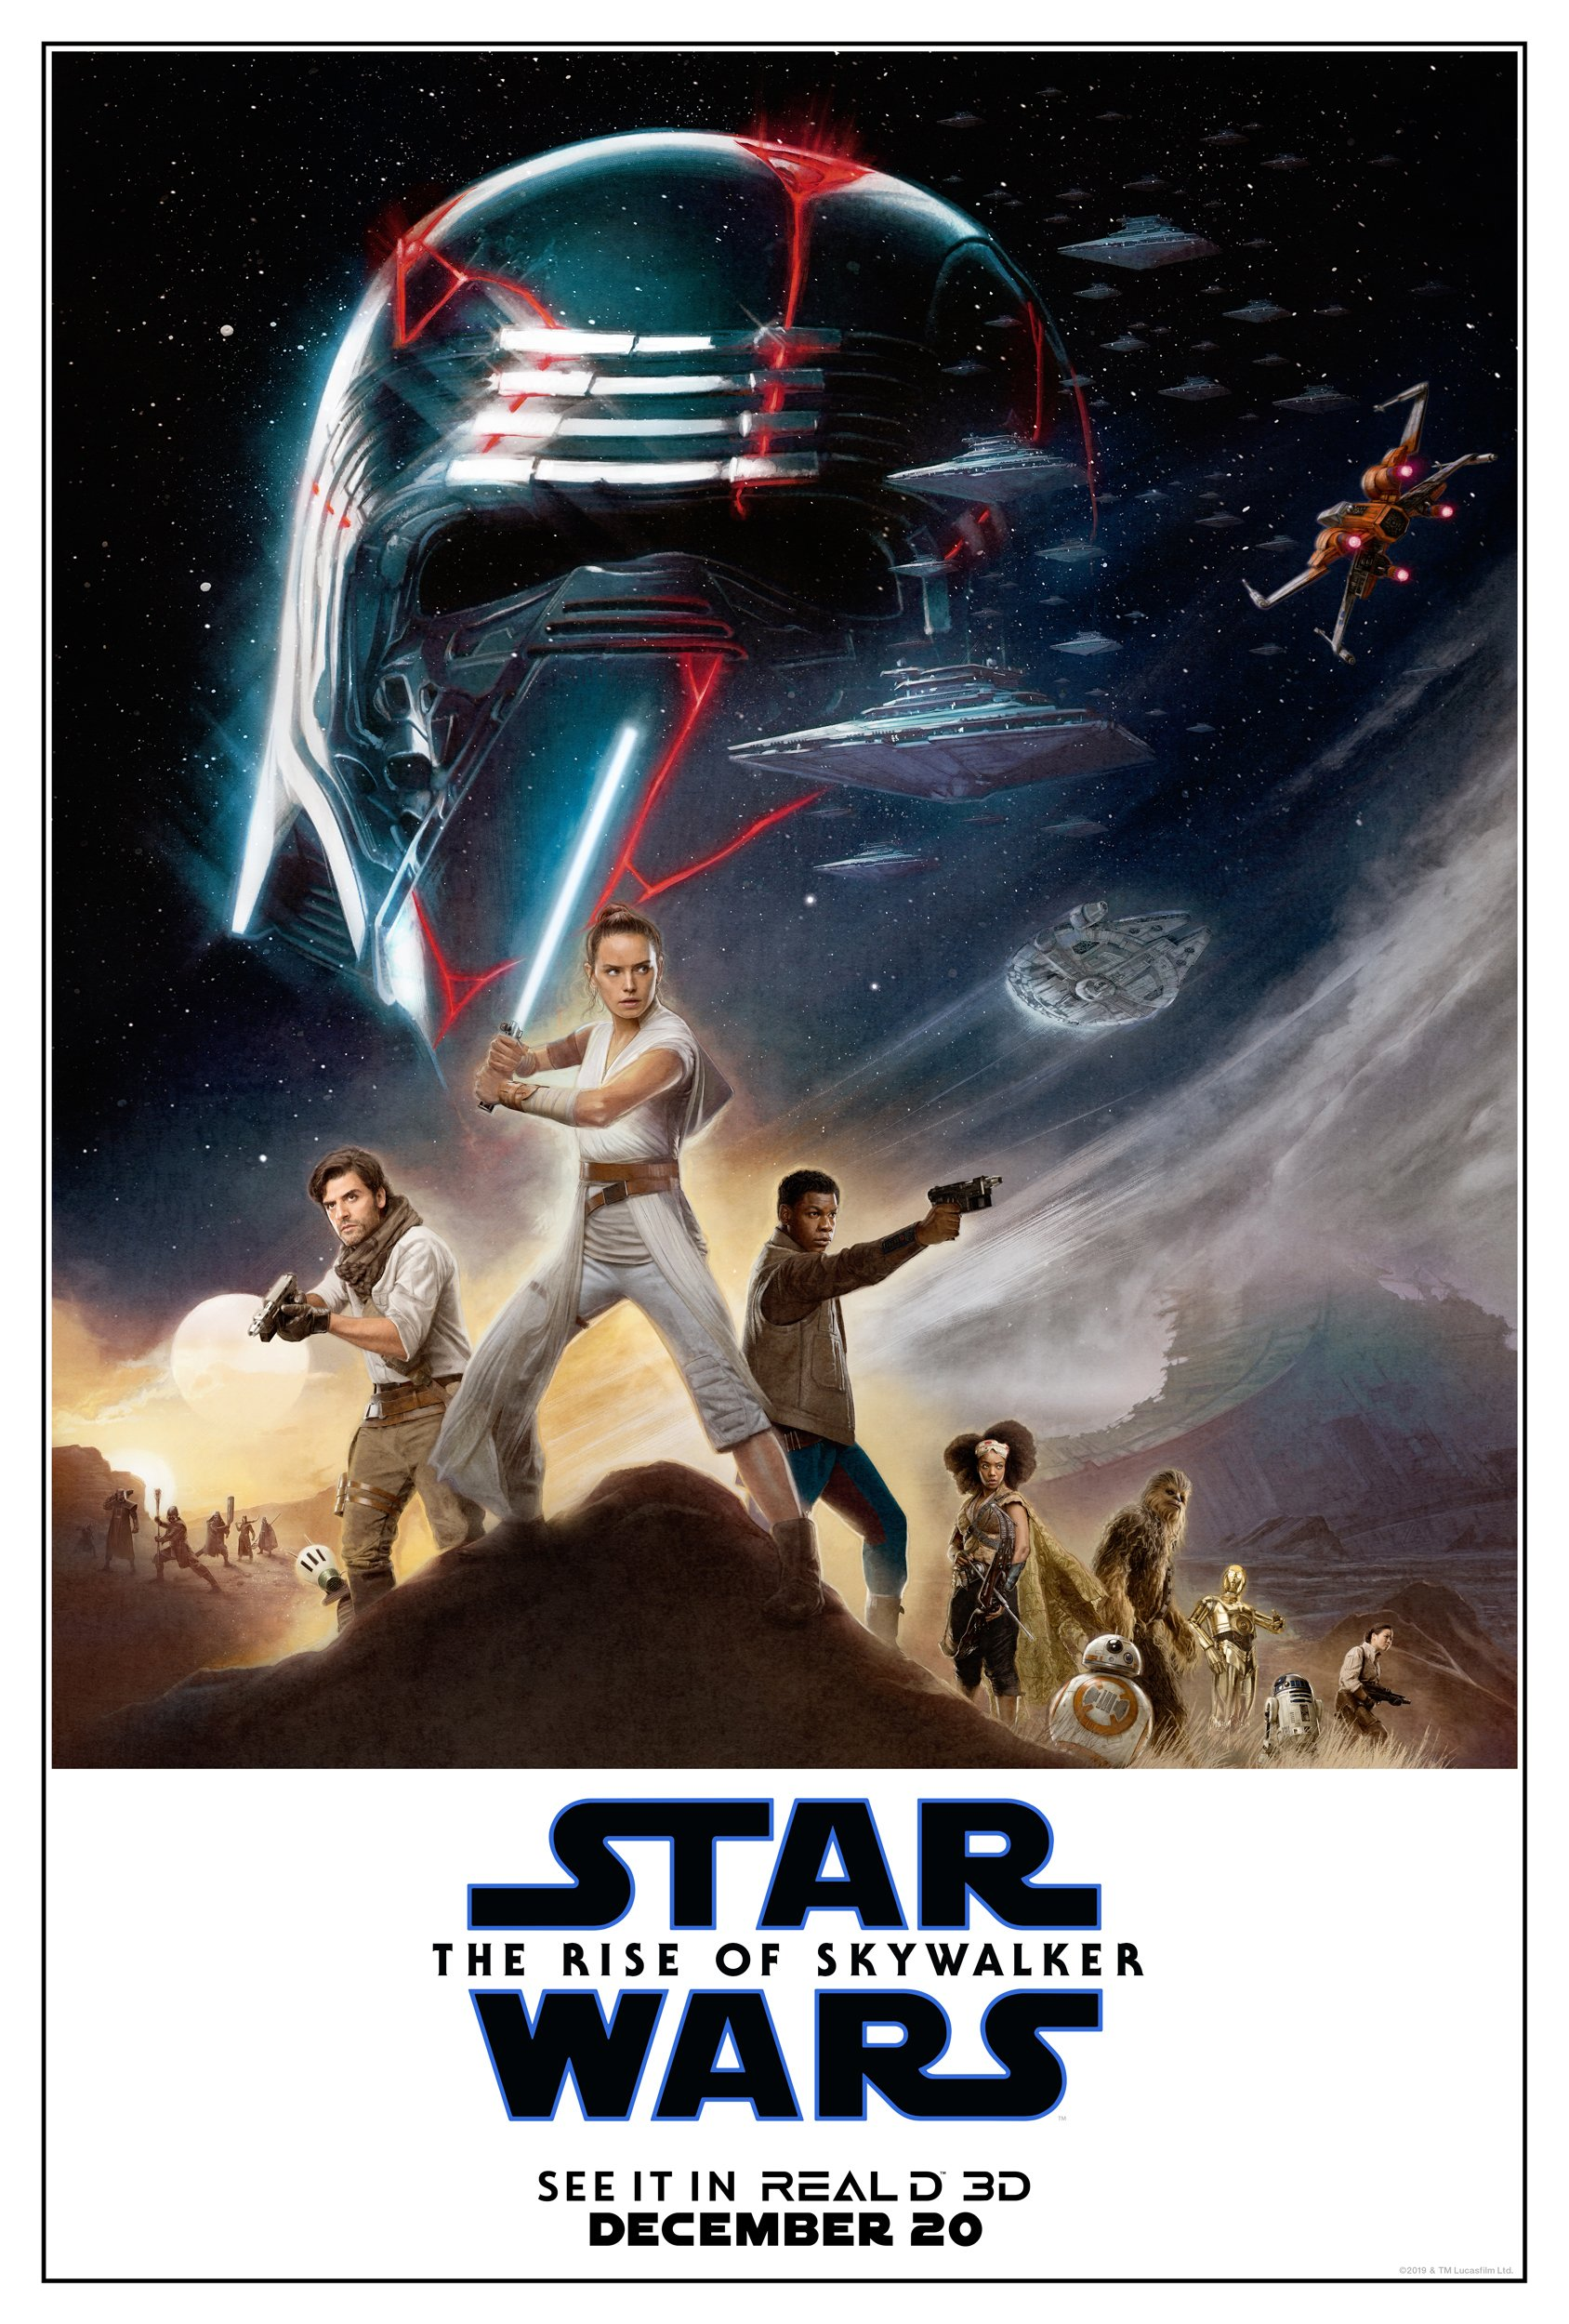 Star Wars Episode IX The Rise Of Skywalker RealD 3D Poster